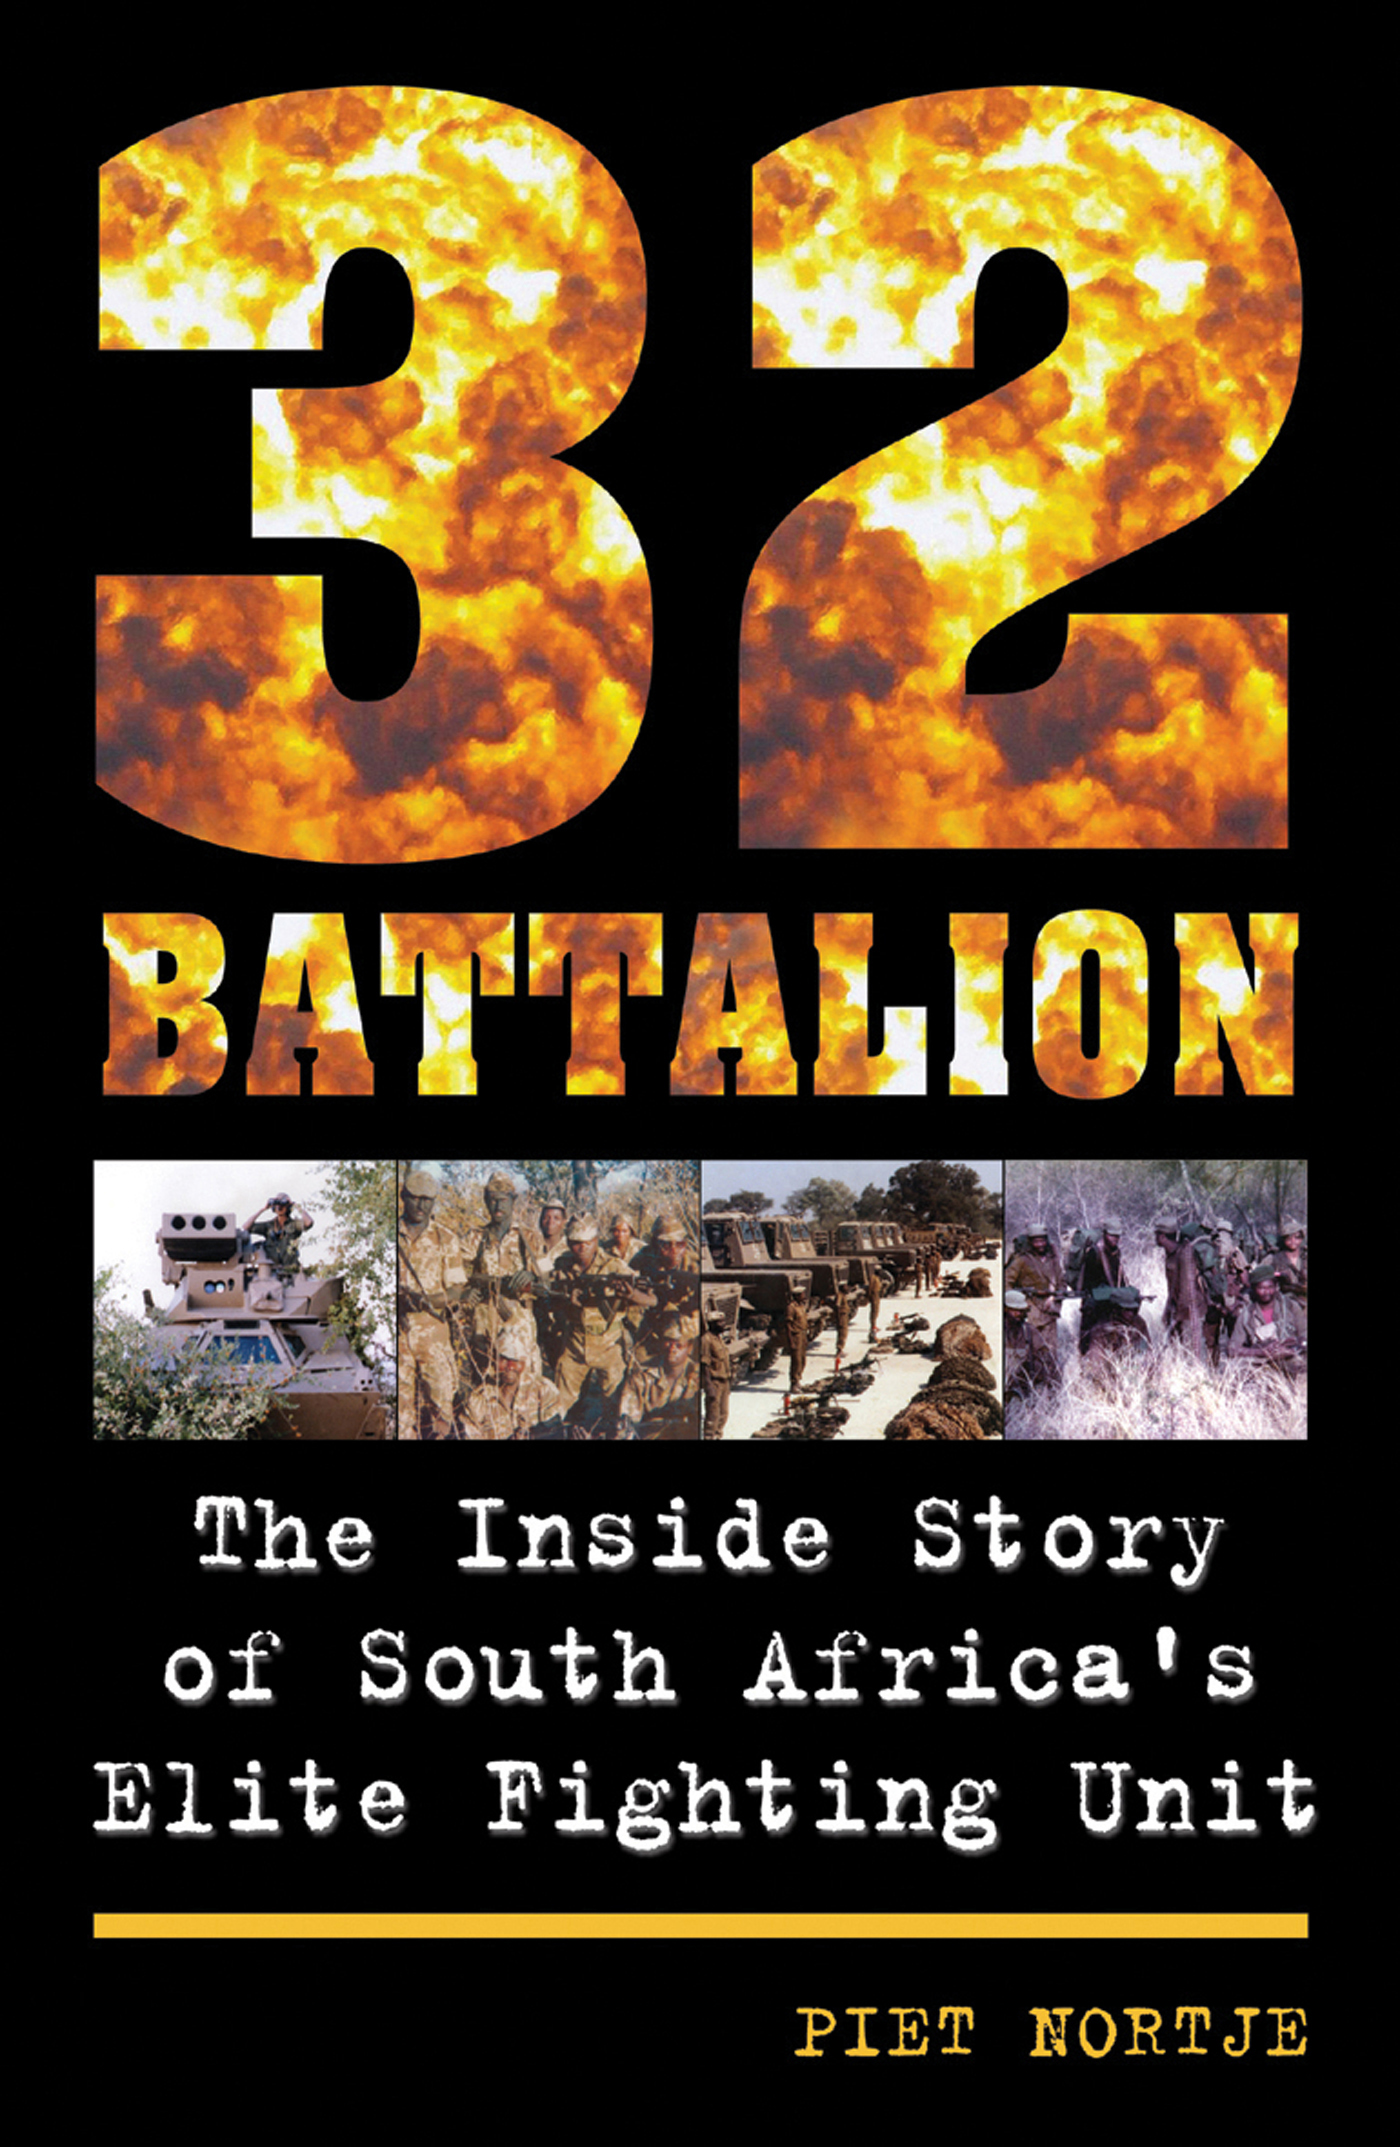 Picture of 32 Battalion